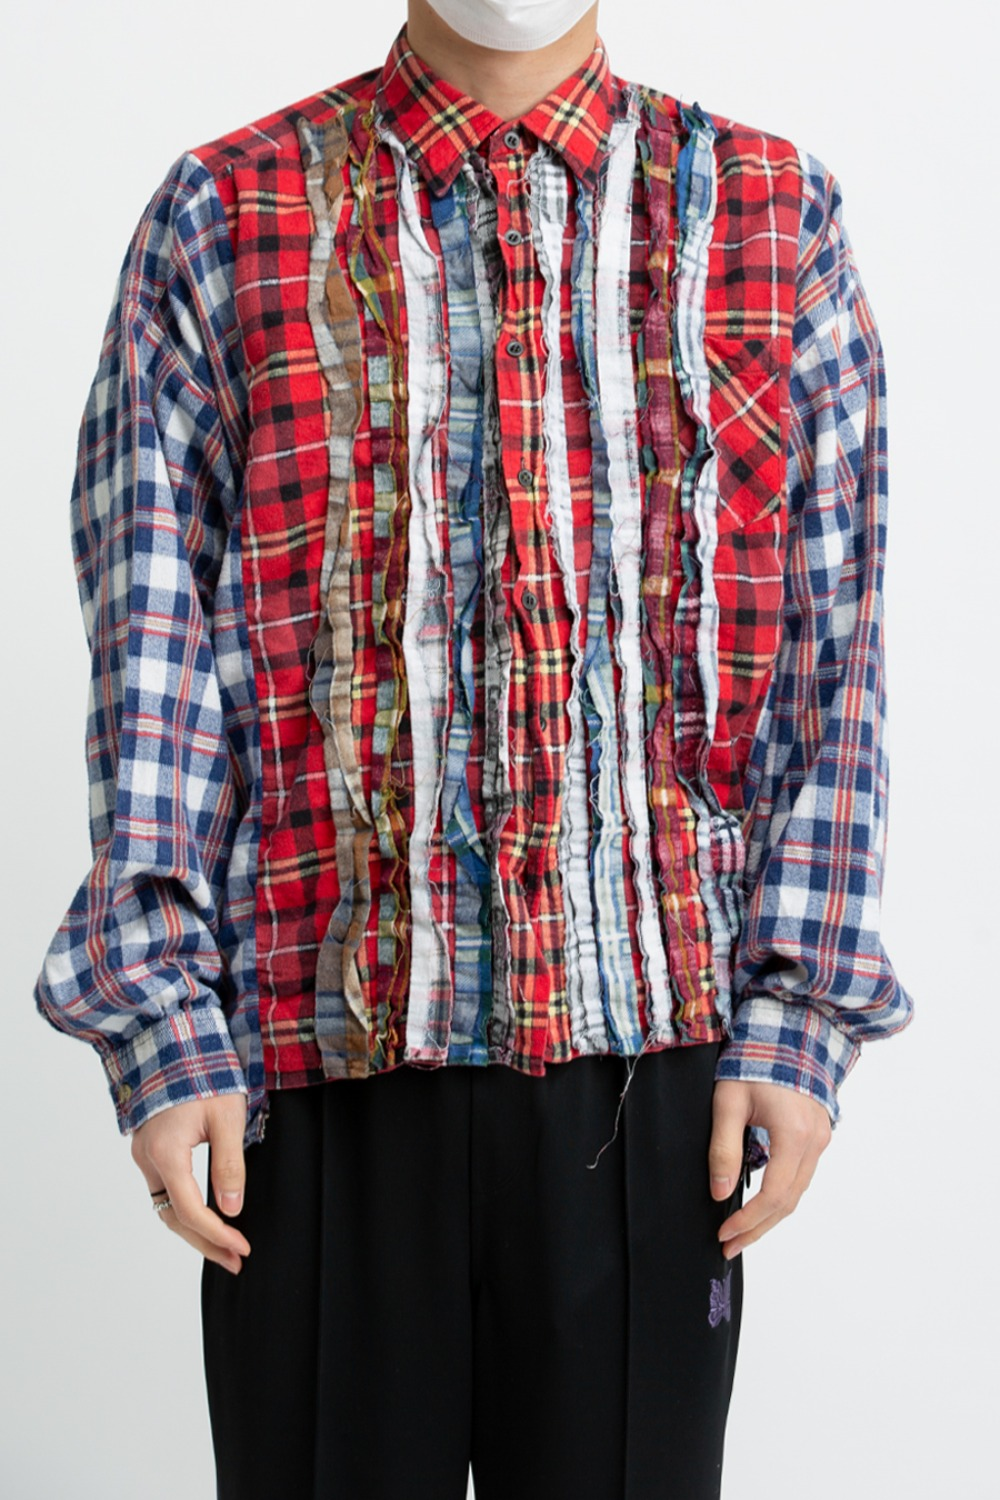 (FRE-1)REBUILD BY NEEDLES FLANNEL SHIRT - RIBBON WIDE SHIRT ASSORTED